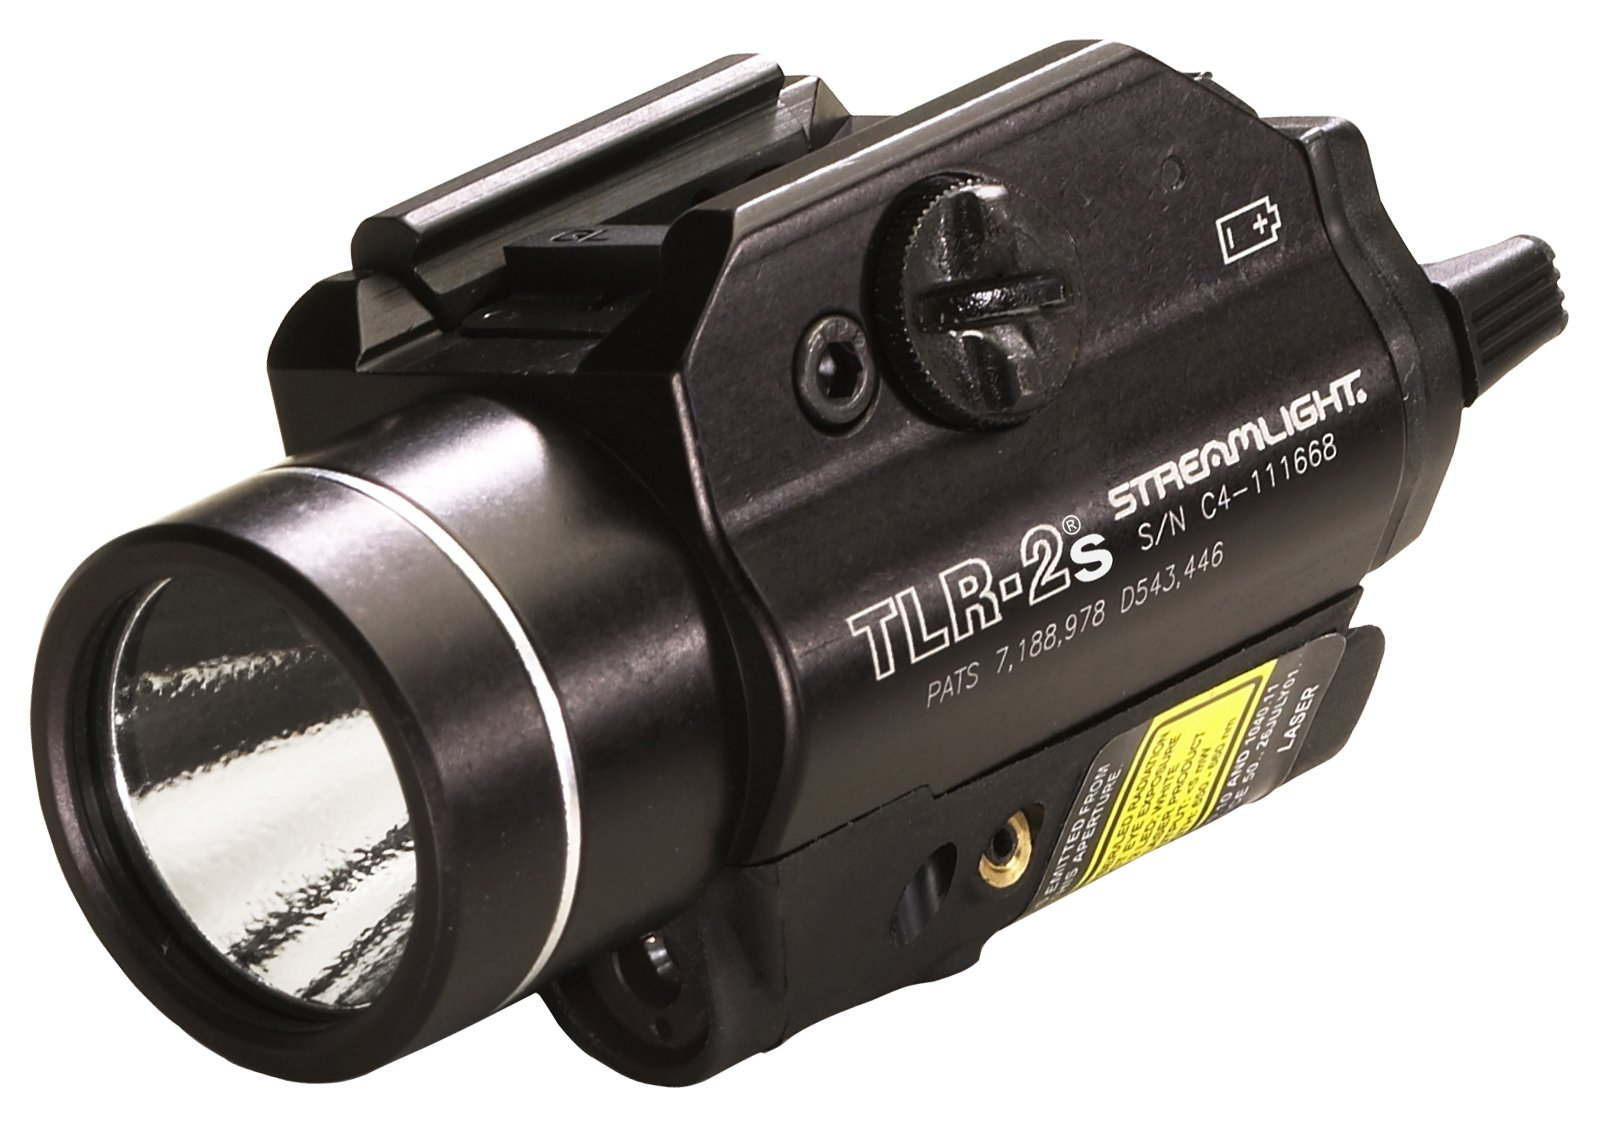 Streamlight TLR-2s 650-660nm Red Laser 69230 Weapon Light W Strobing by Streamlight